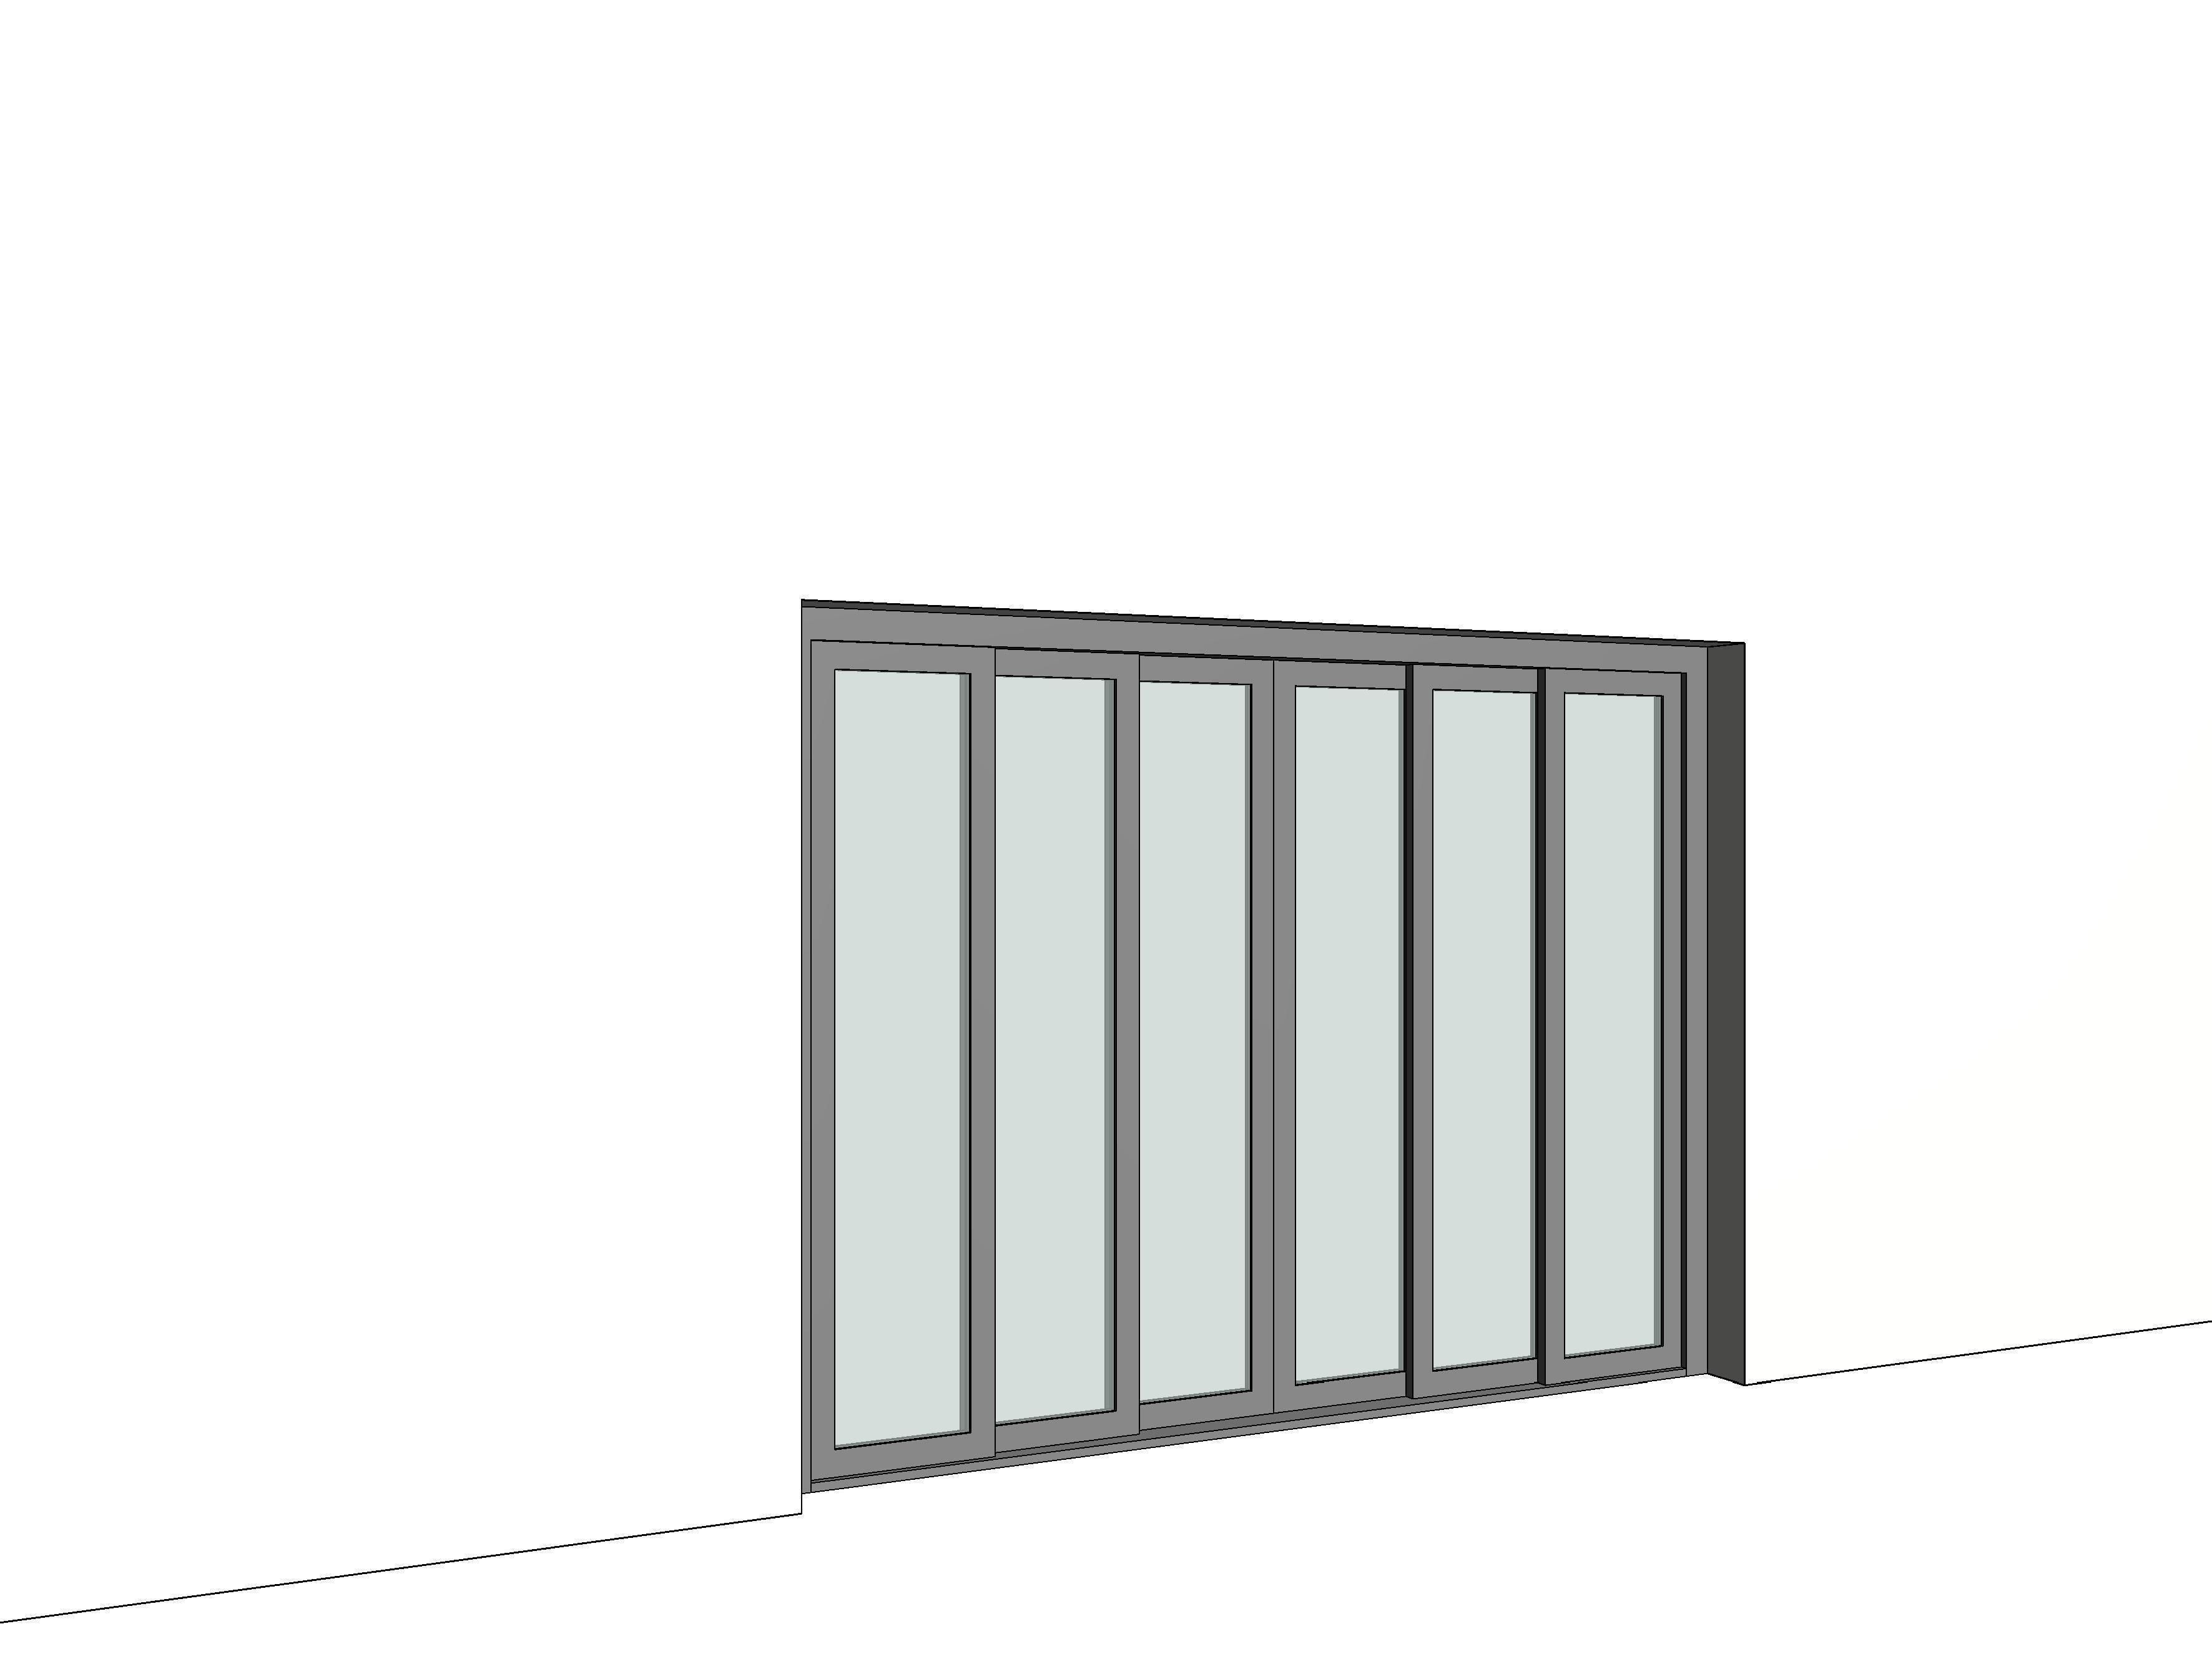 Revit Barn Door Family Allowed To Be Able To The Blog On This Time Period I Will Show You About Revit Barn Do Barn Door Sliding Doors Interior Sliding Doors